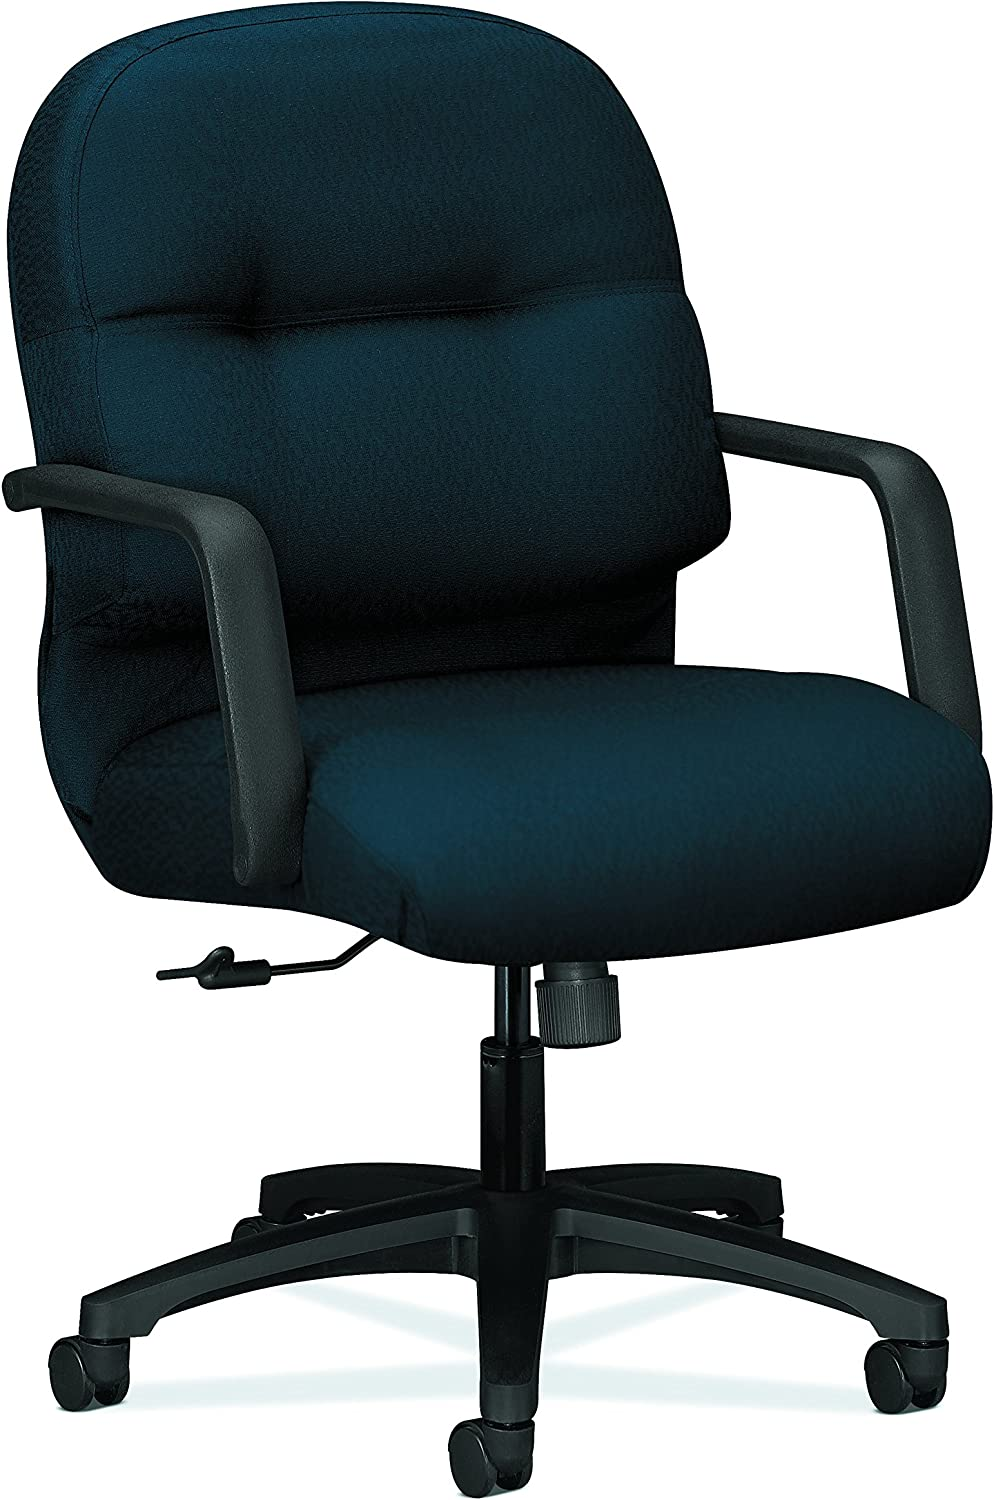 HON Executive Chair - Pillow-Soft Series Mid-Back Office , Blue (H2092)